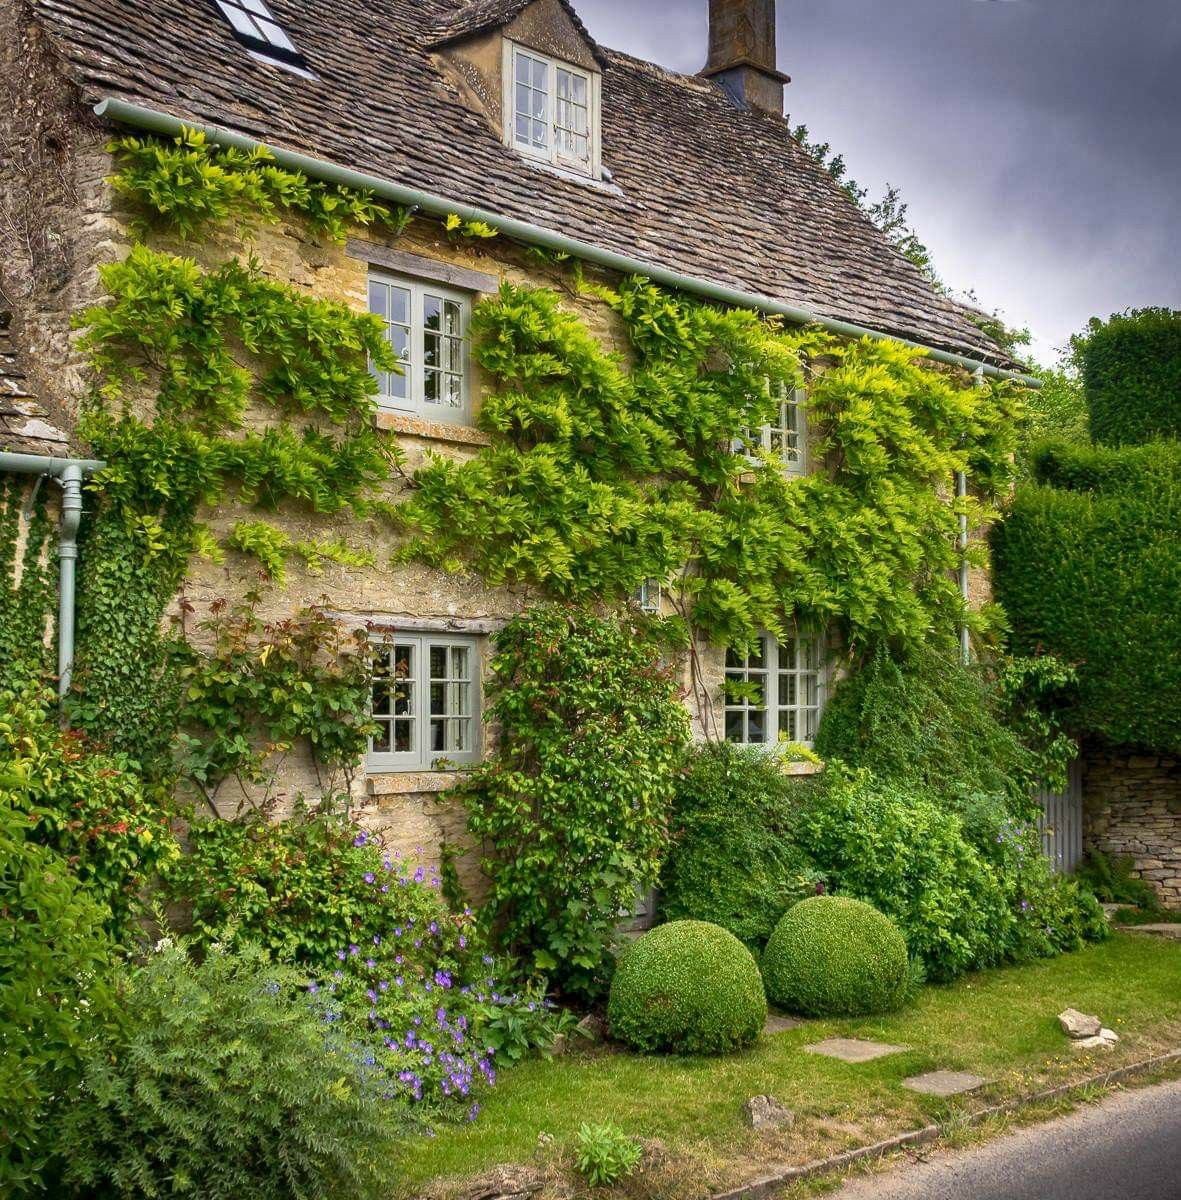 Pin By Rebecca Chargin On Country Cottages/Thatched Roof